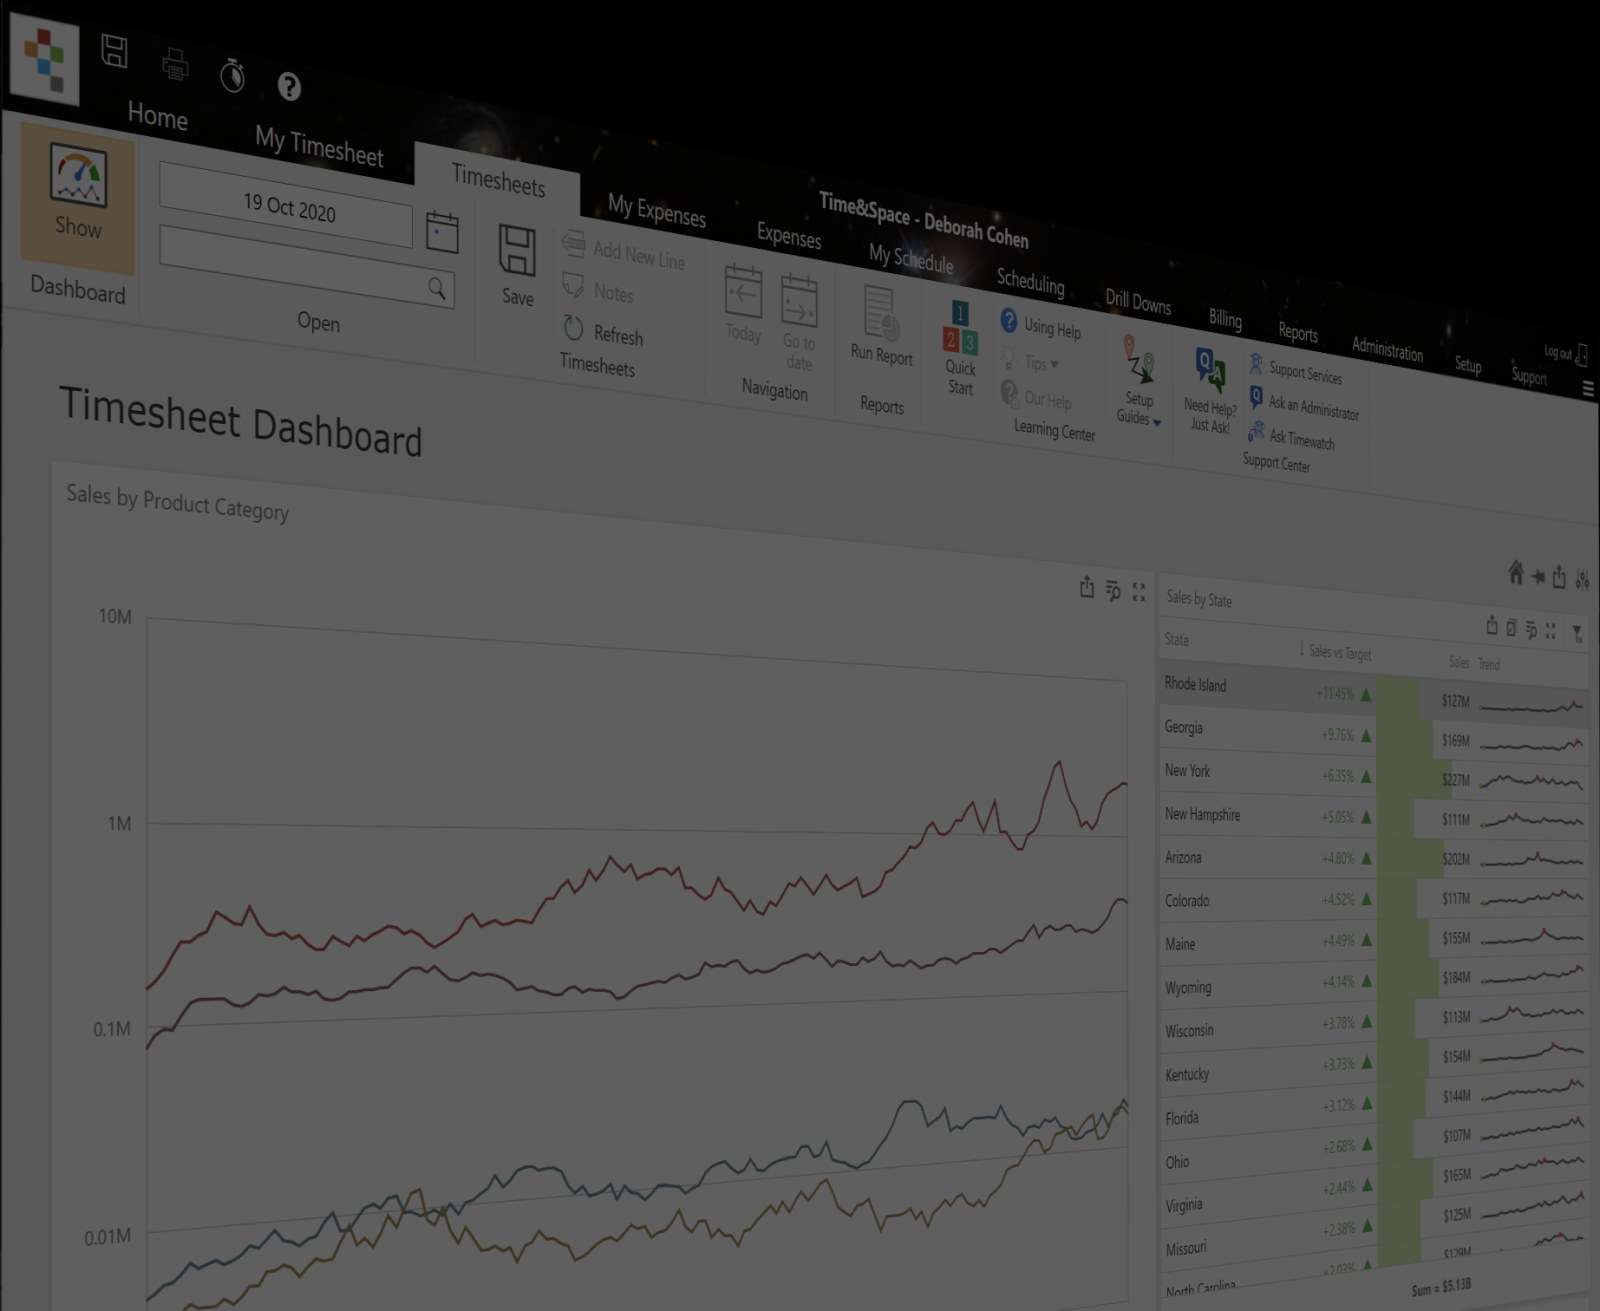 How to customize your scheduling and timesheet dashboard for business success